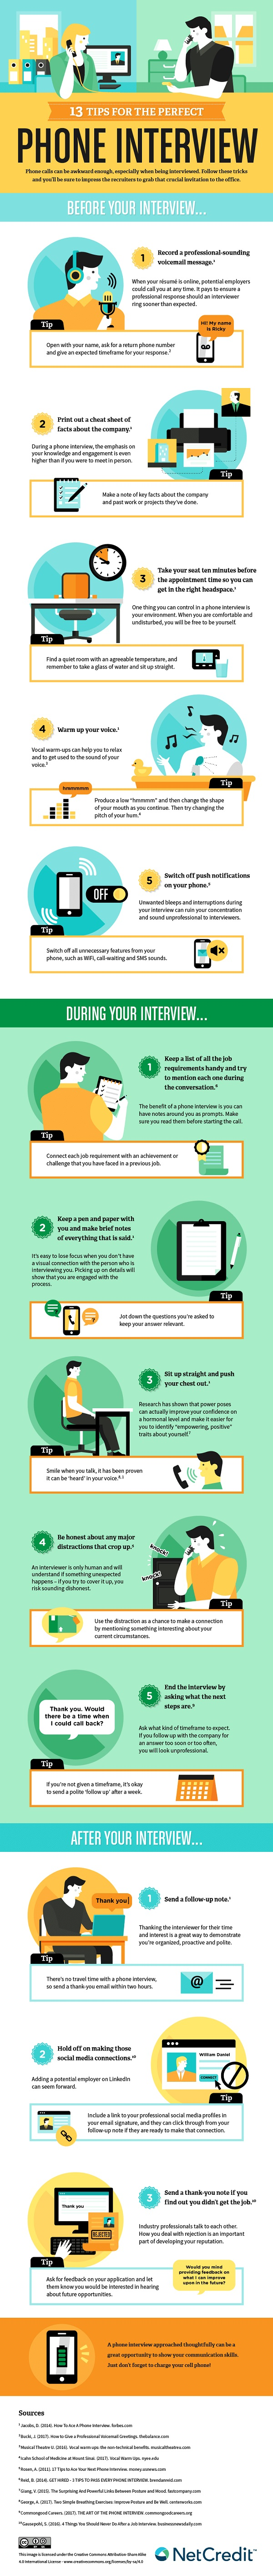 infographic tips for the perfect phone interview com click to view enlarged version